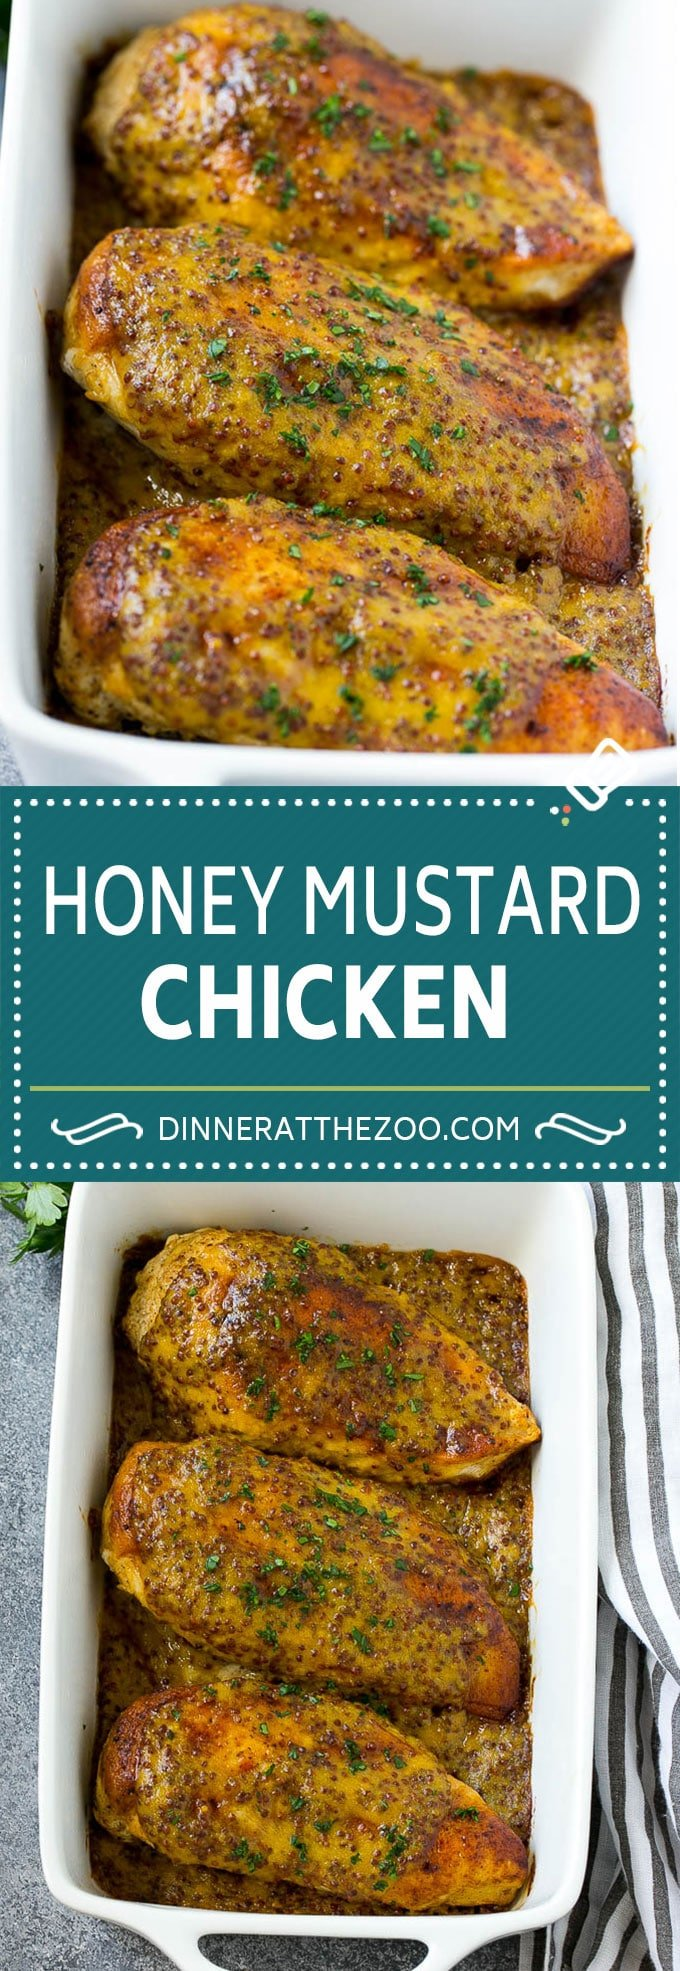 Honey Mustard Chicken Recipe | Baked Chicken Recipe | Easy Chicken Recipe #chicken #dinner #dinneratthezoo